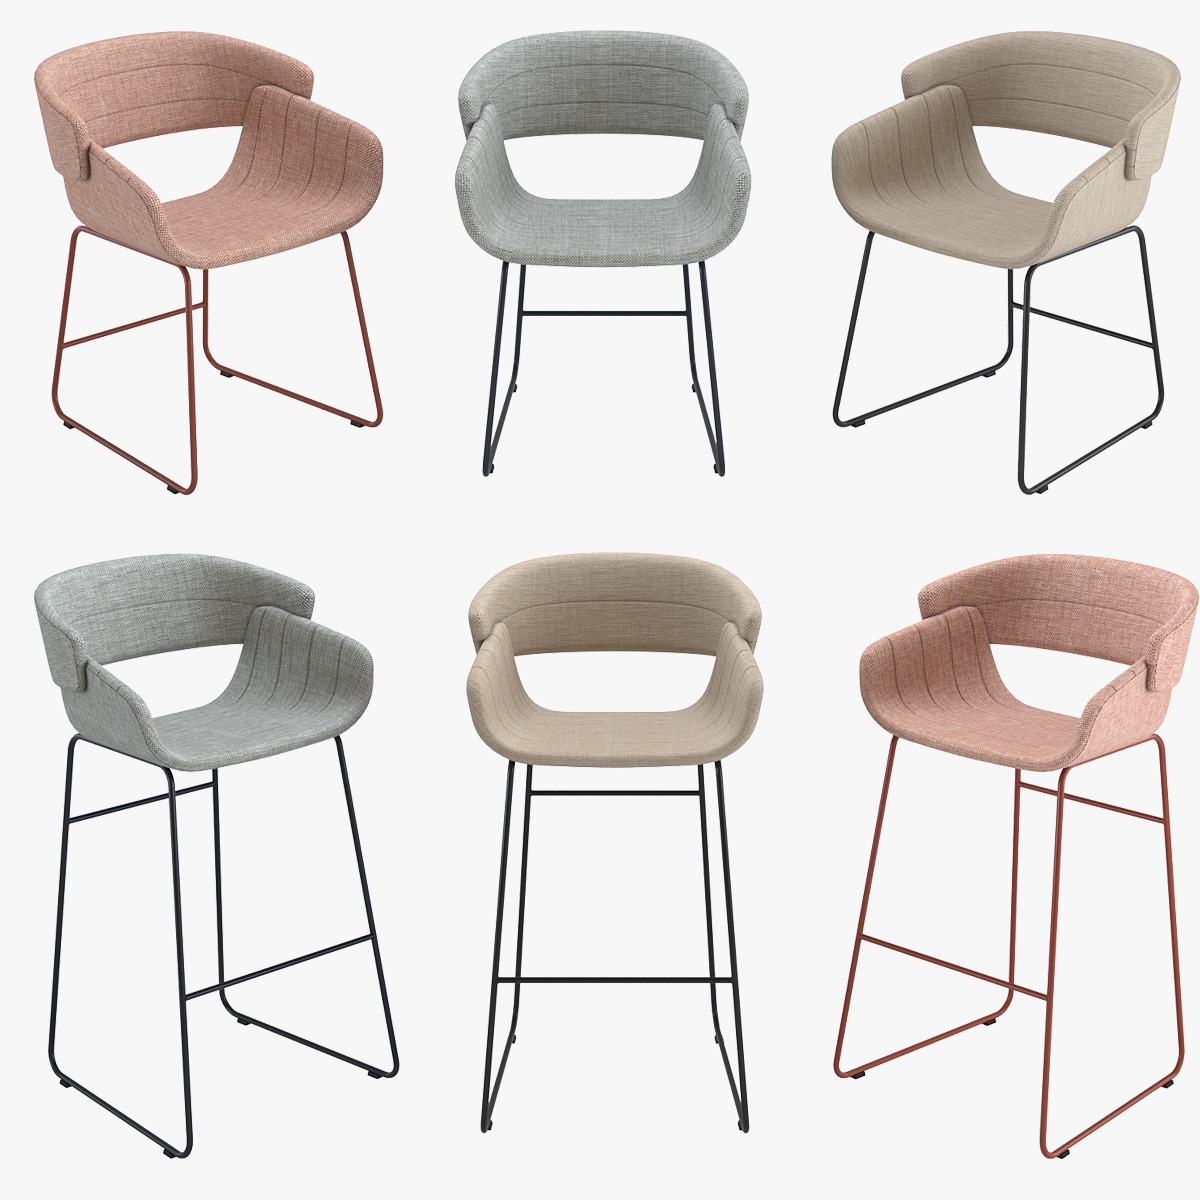 Prime Blu Dot Racer Dining Chair Barstool Ocoug Best Dining Table And Chair Ideas Images Ocougorg